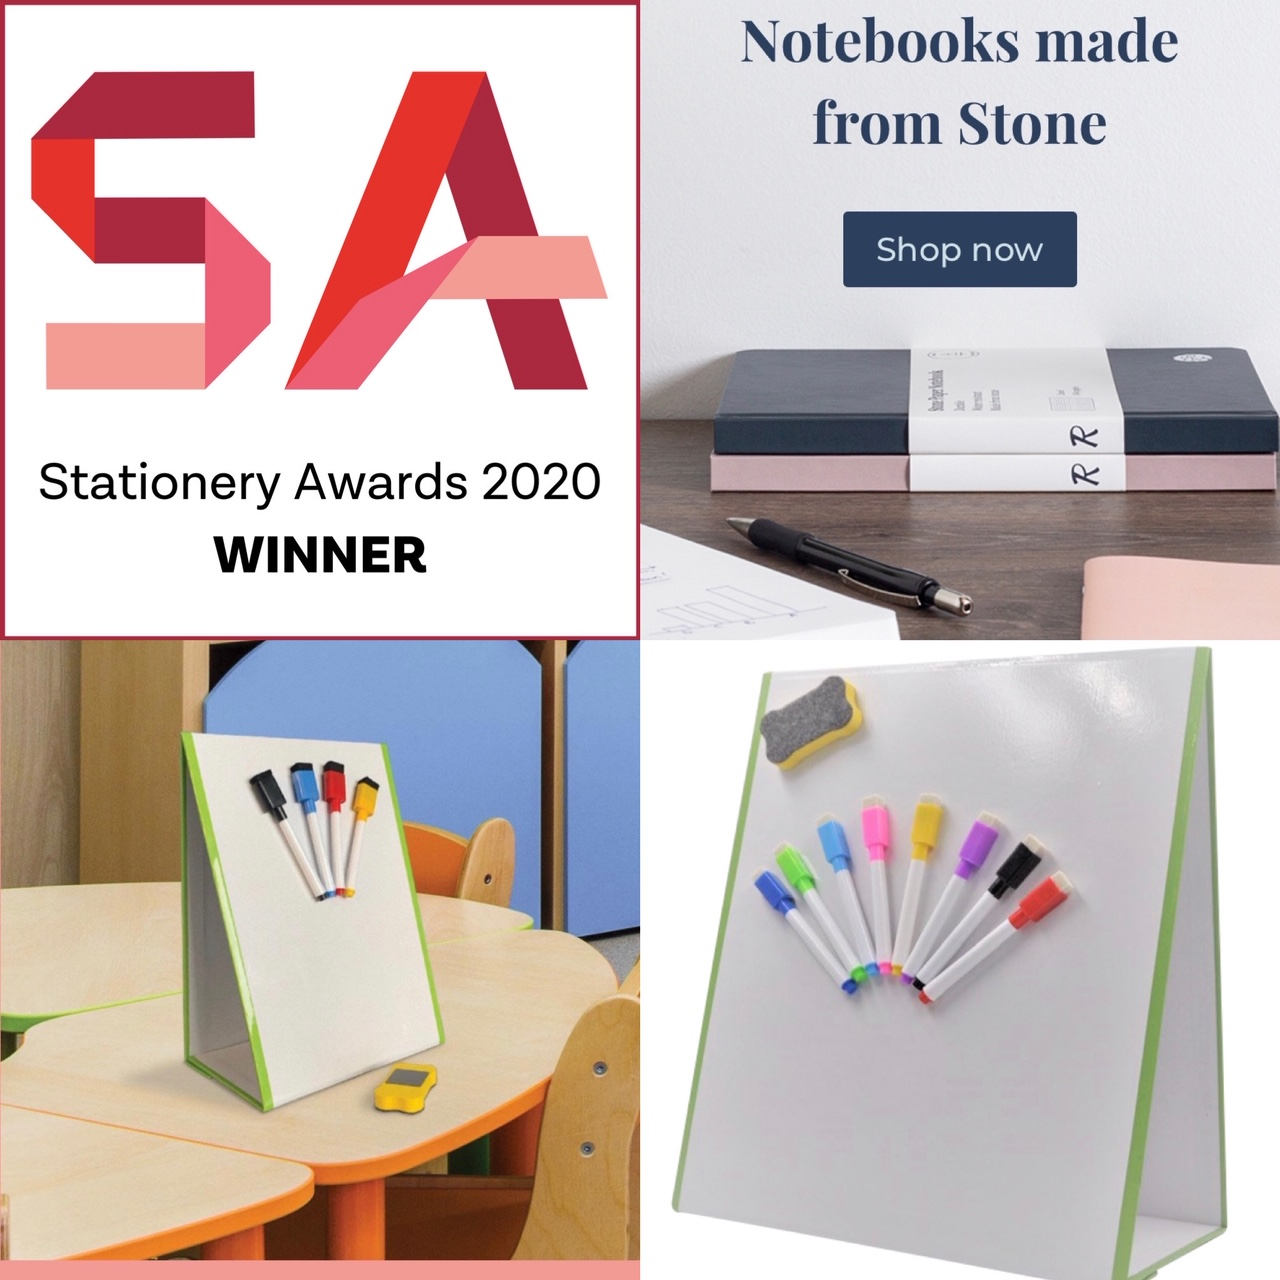 Stationery Show Winner 2020 - Magic Whiteboard Tree Free Notebooks